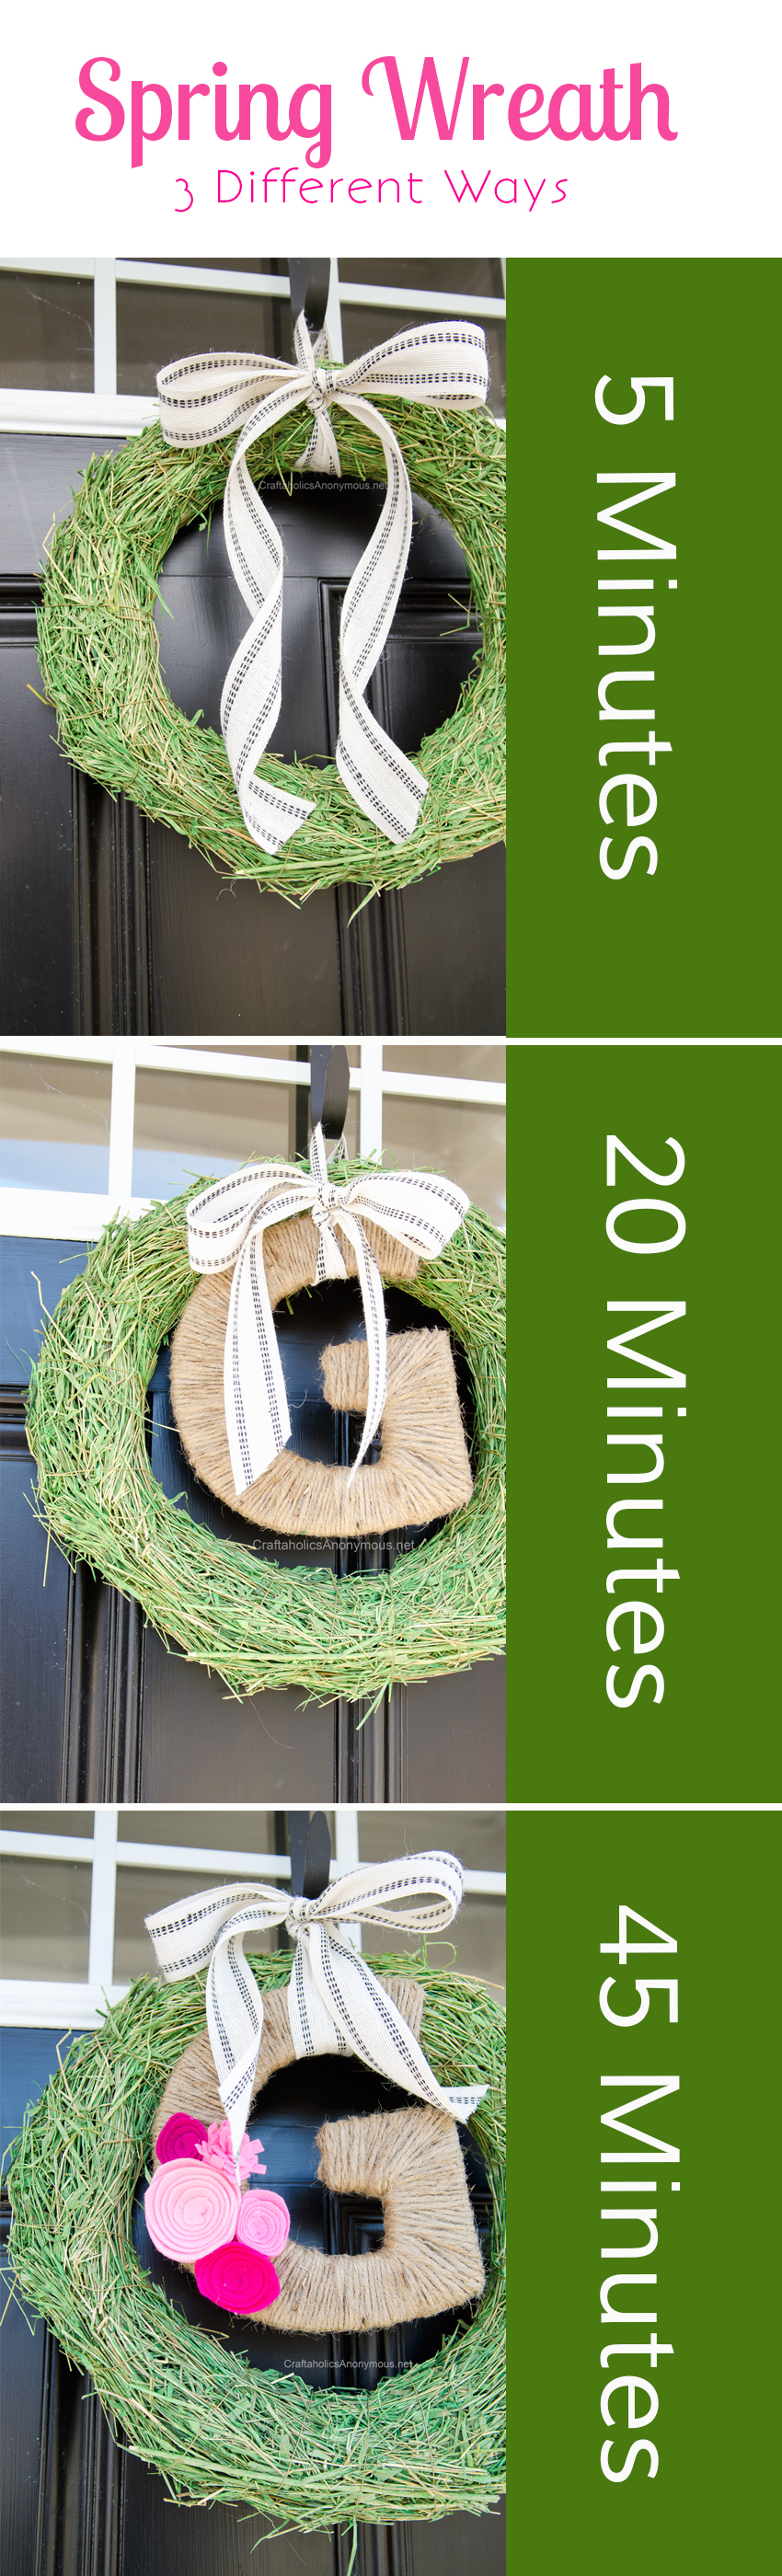 DIY Spring Wreaths that can be made in a matter of minutes || Love the monogram spring wreath!